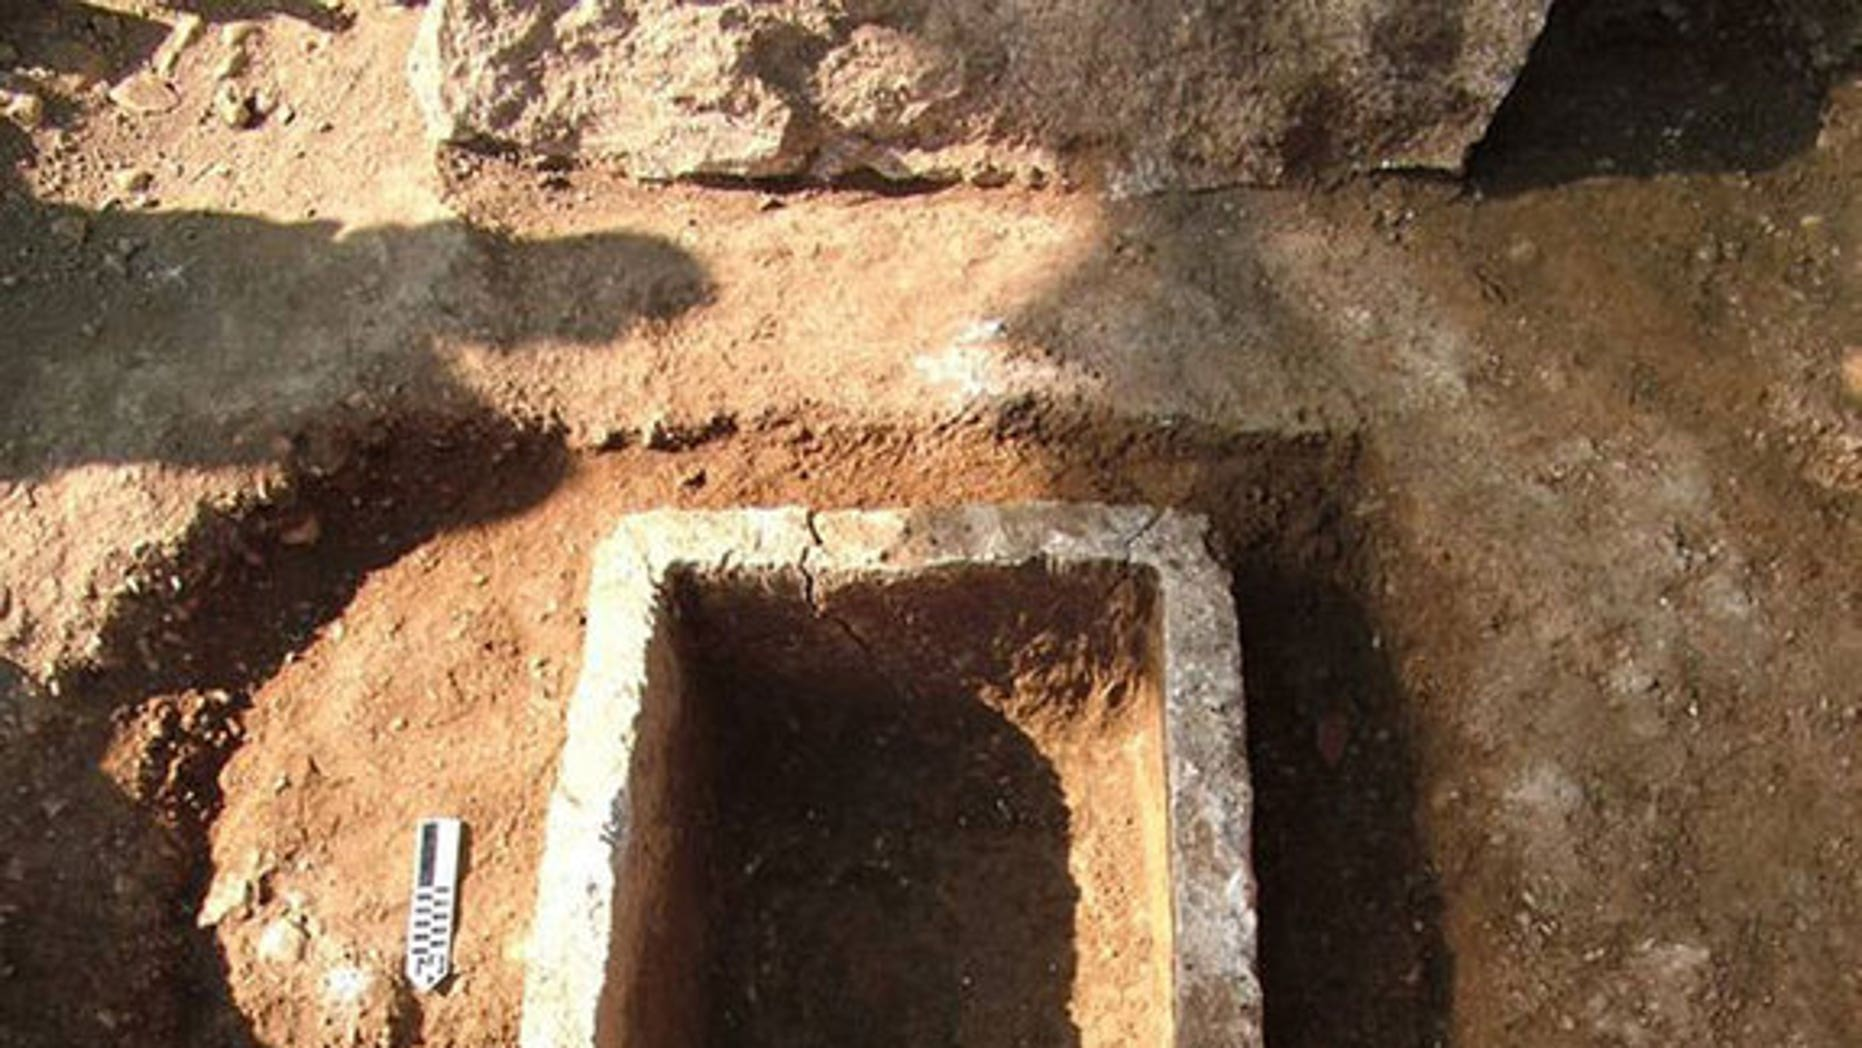 A 2,800-year-old tomb with the remains of a possibly wealthy individual inside, has been discovered in the ancient city of Corinth in Greece.